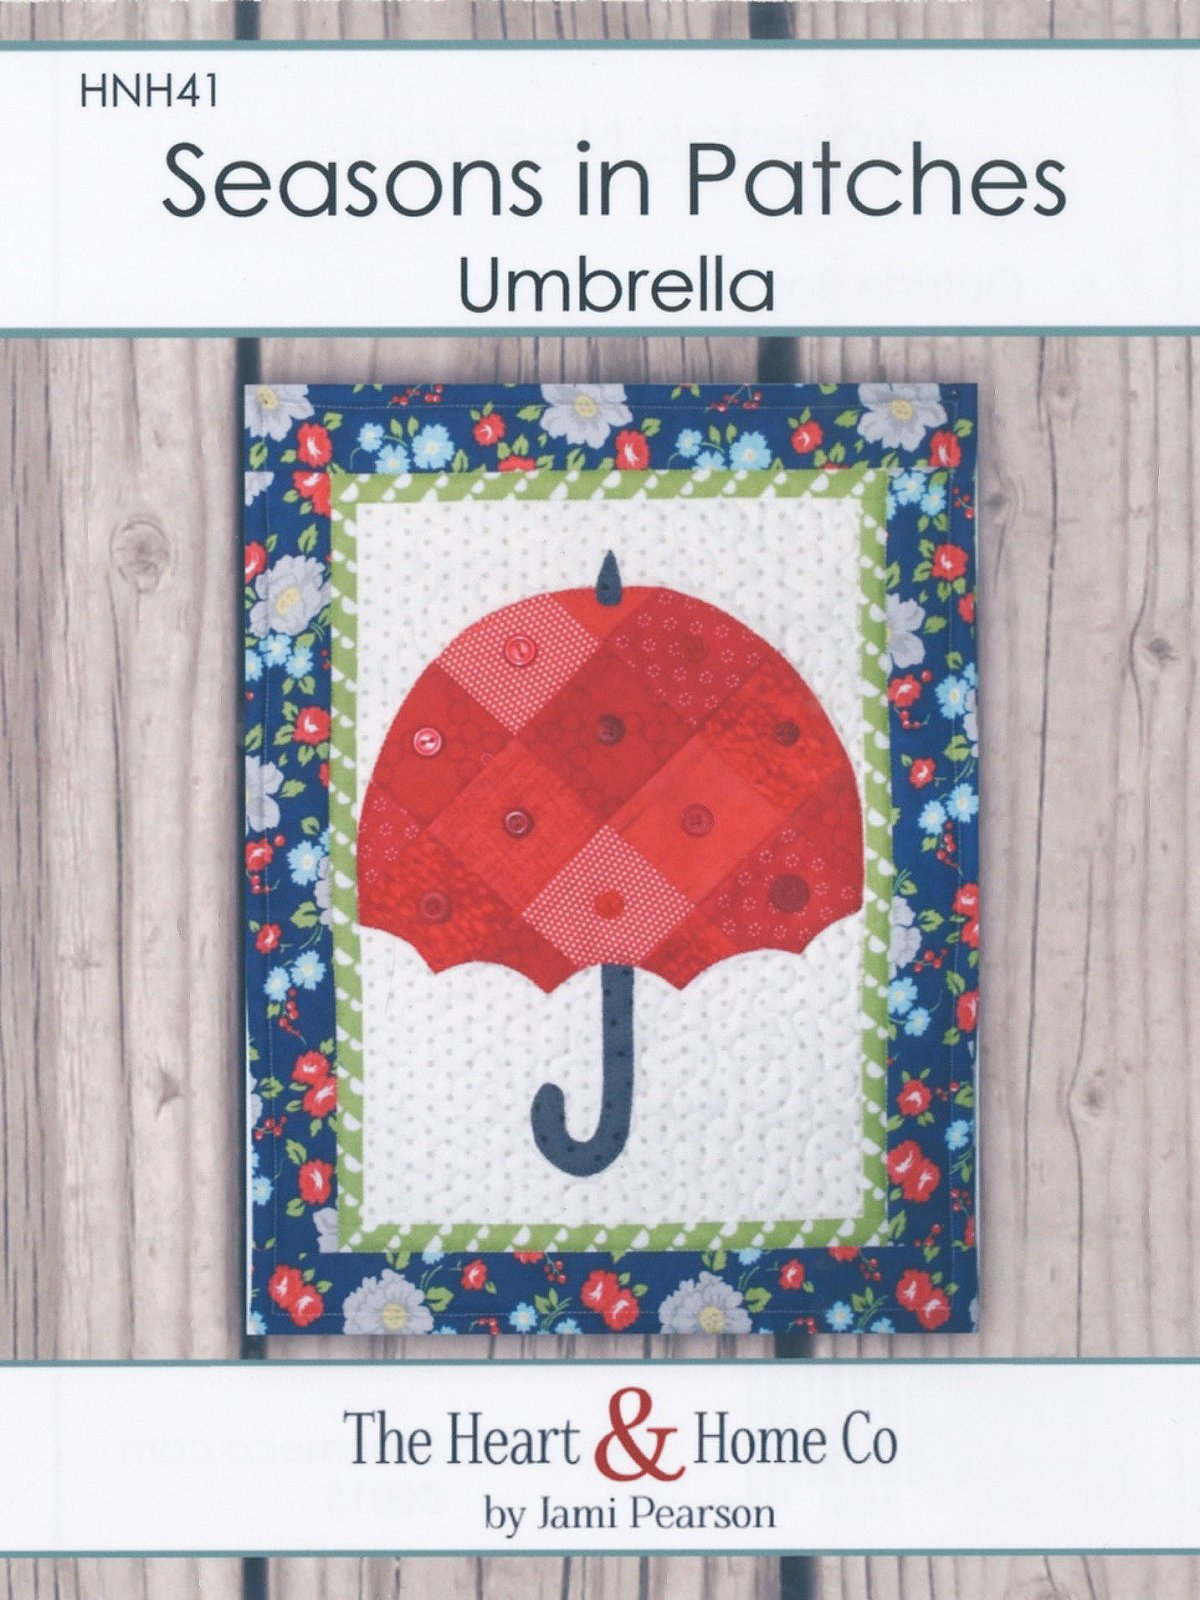 Seasons in Patches Umbrella